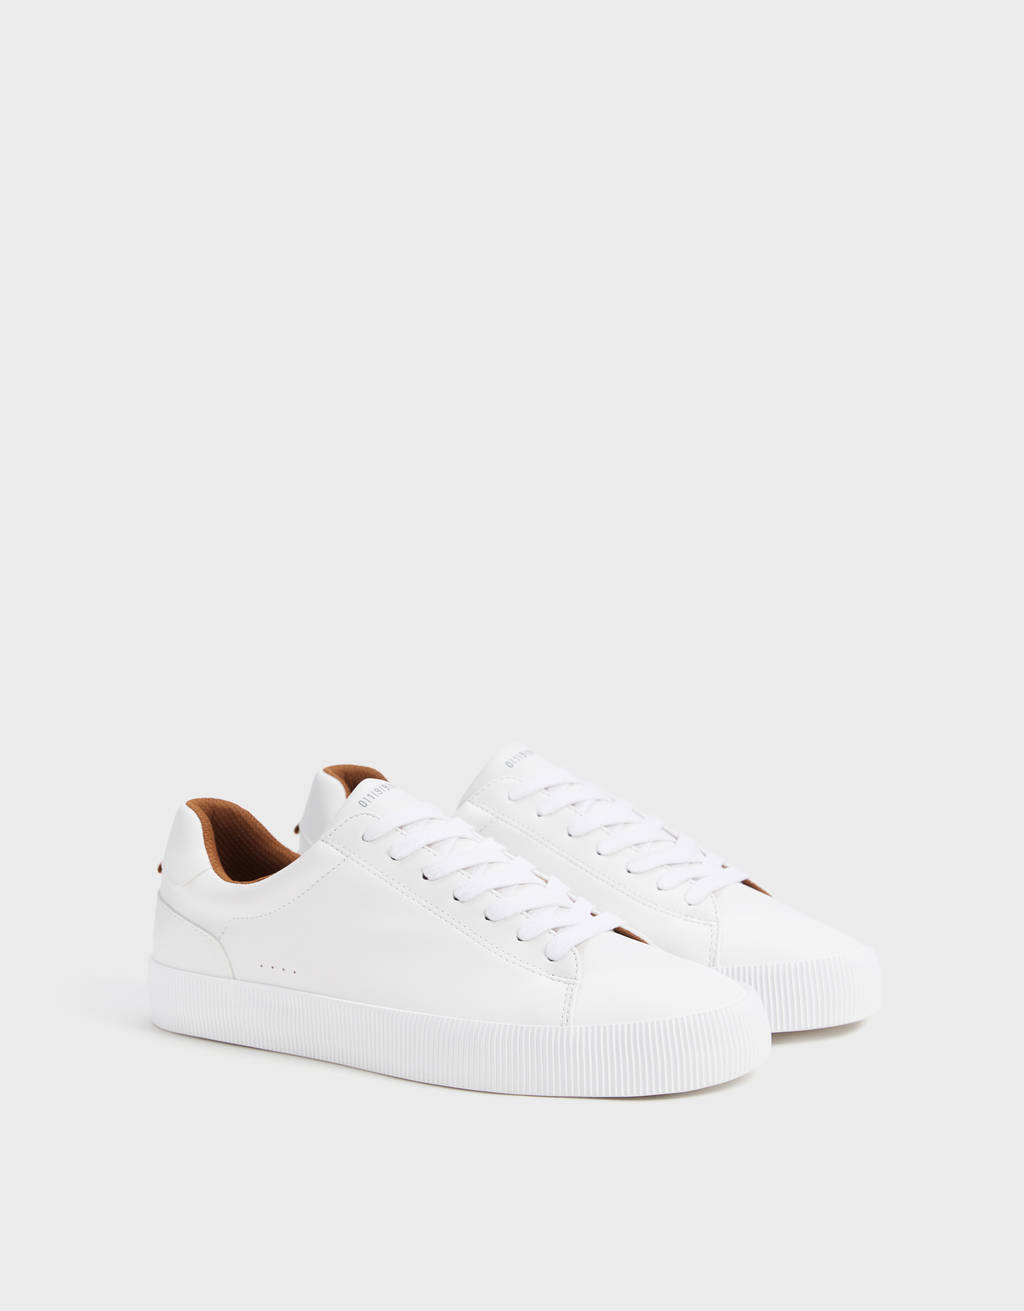 Men's white trainers